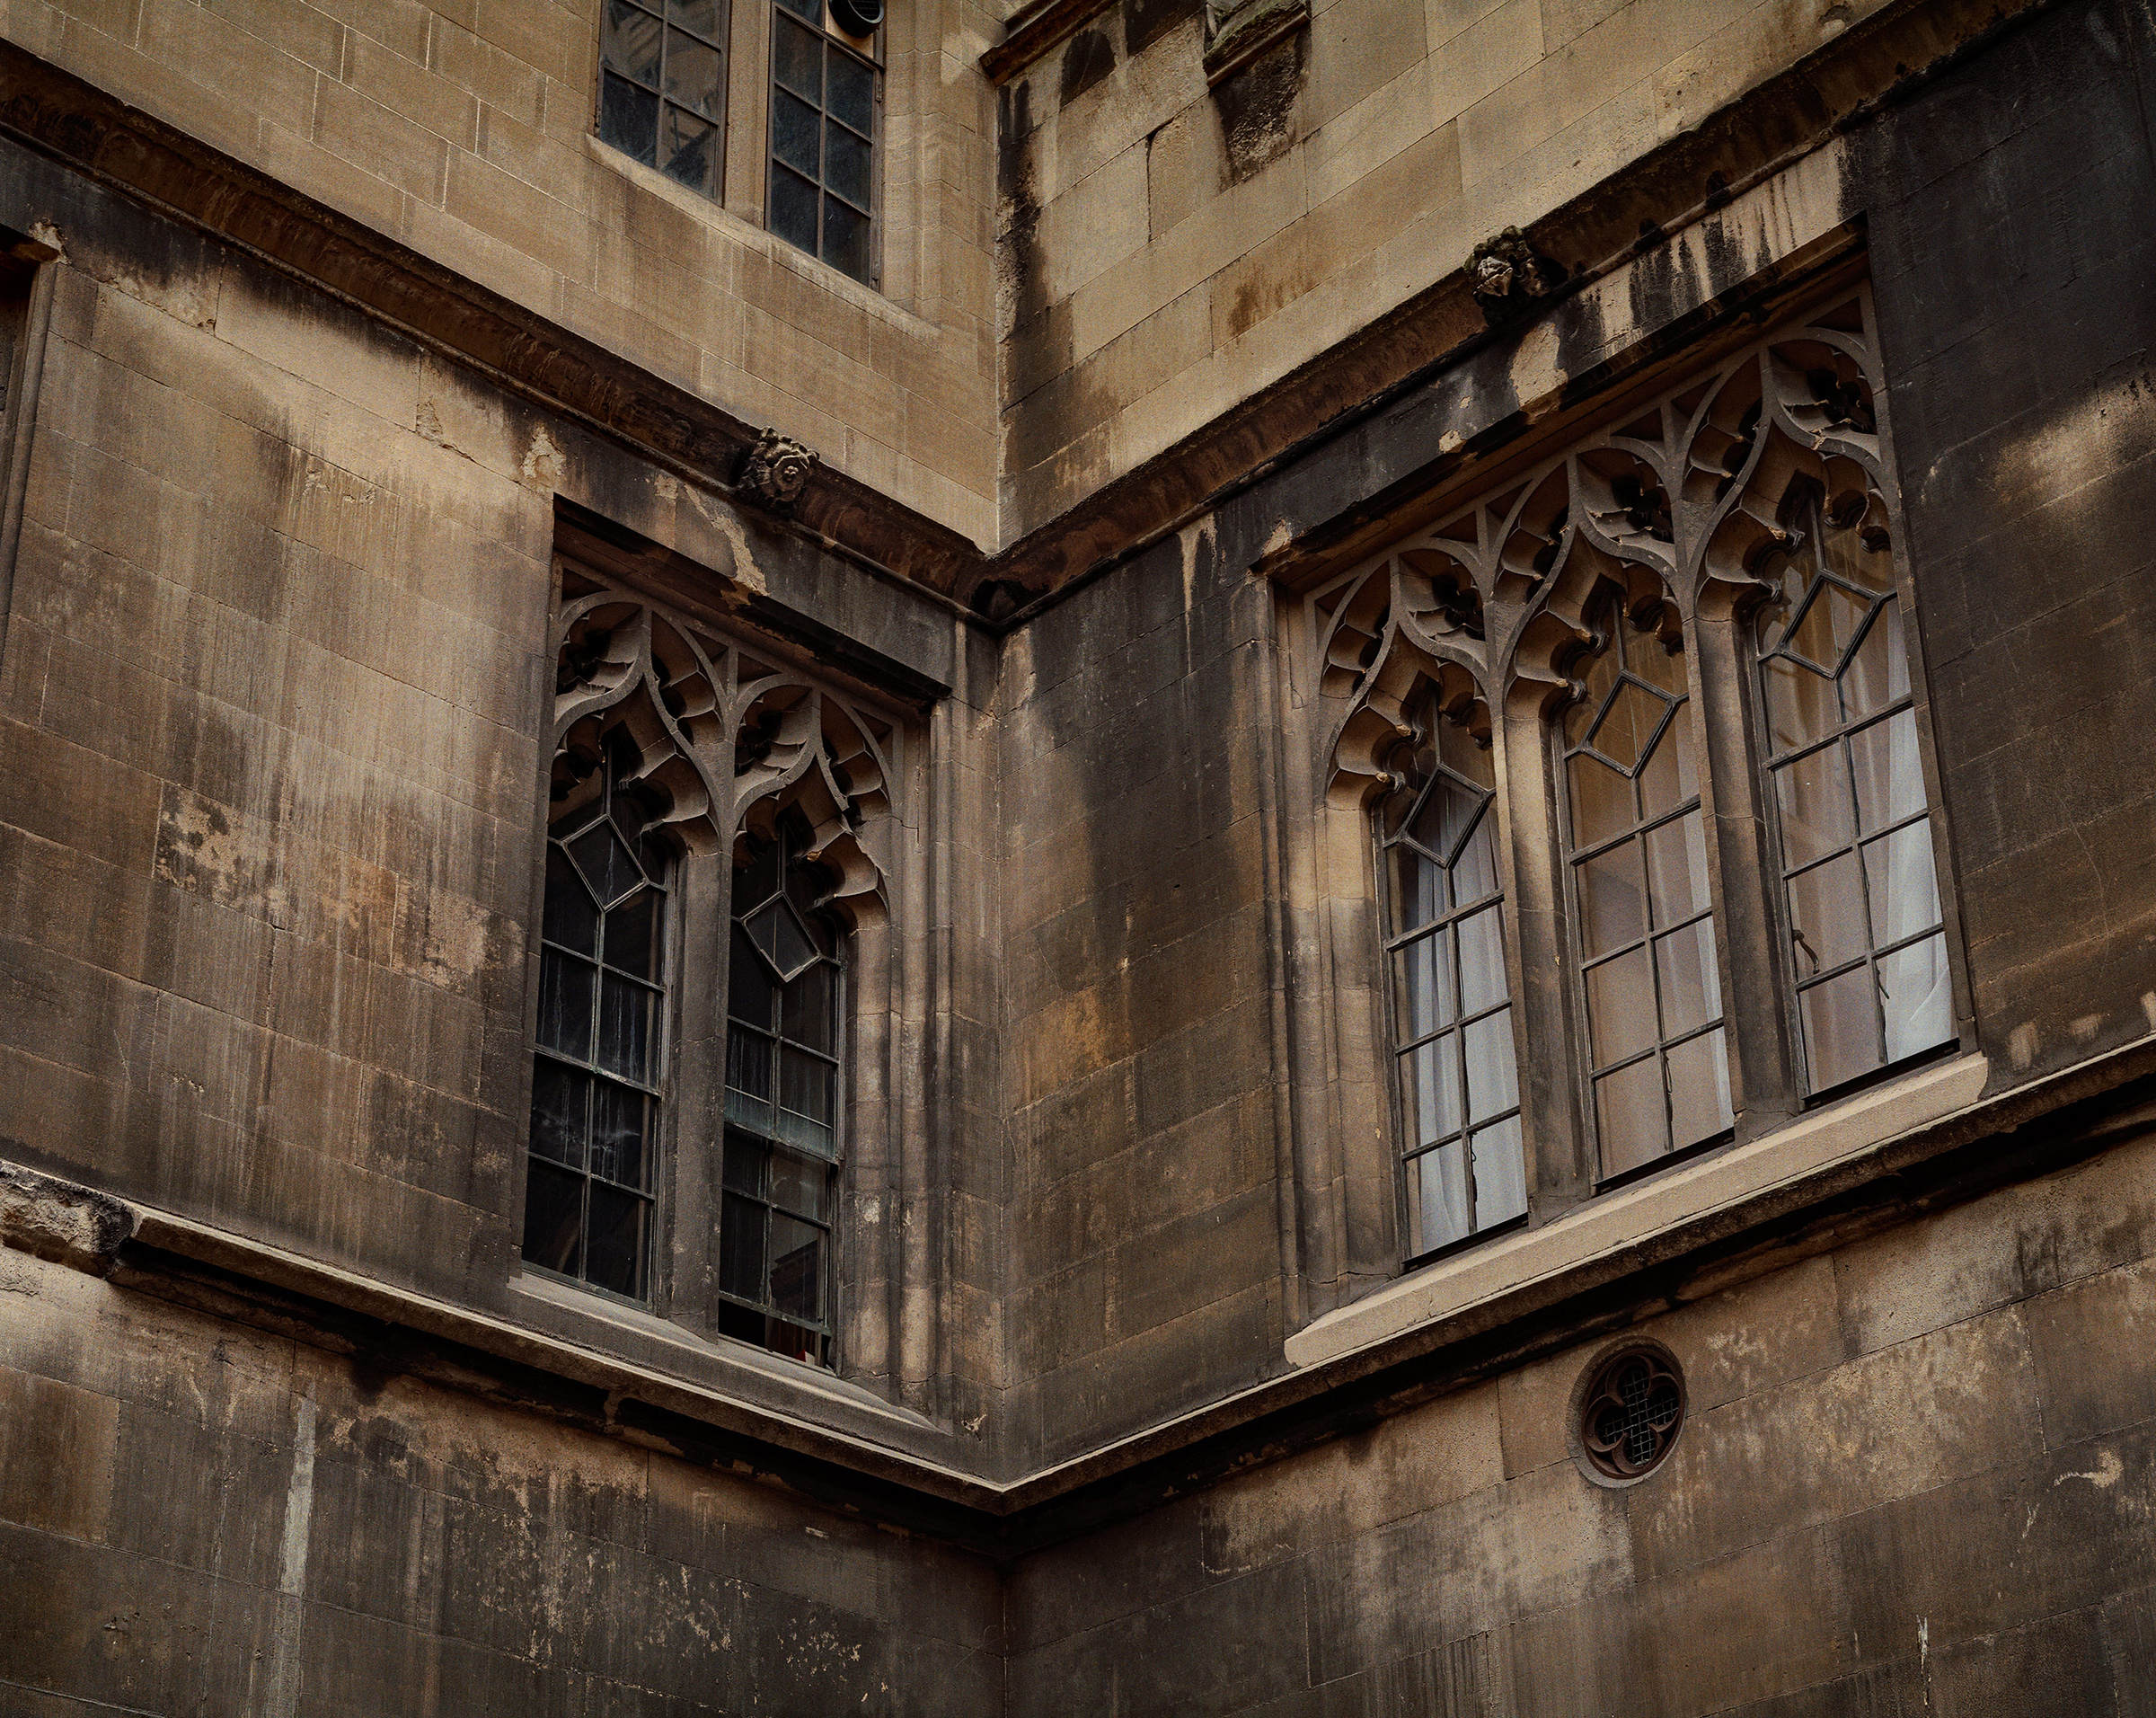 Blocks of masonry missing (bottom left), and blackened brickwork in the Palace of Westminster, London, on May 30, 2019.